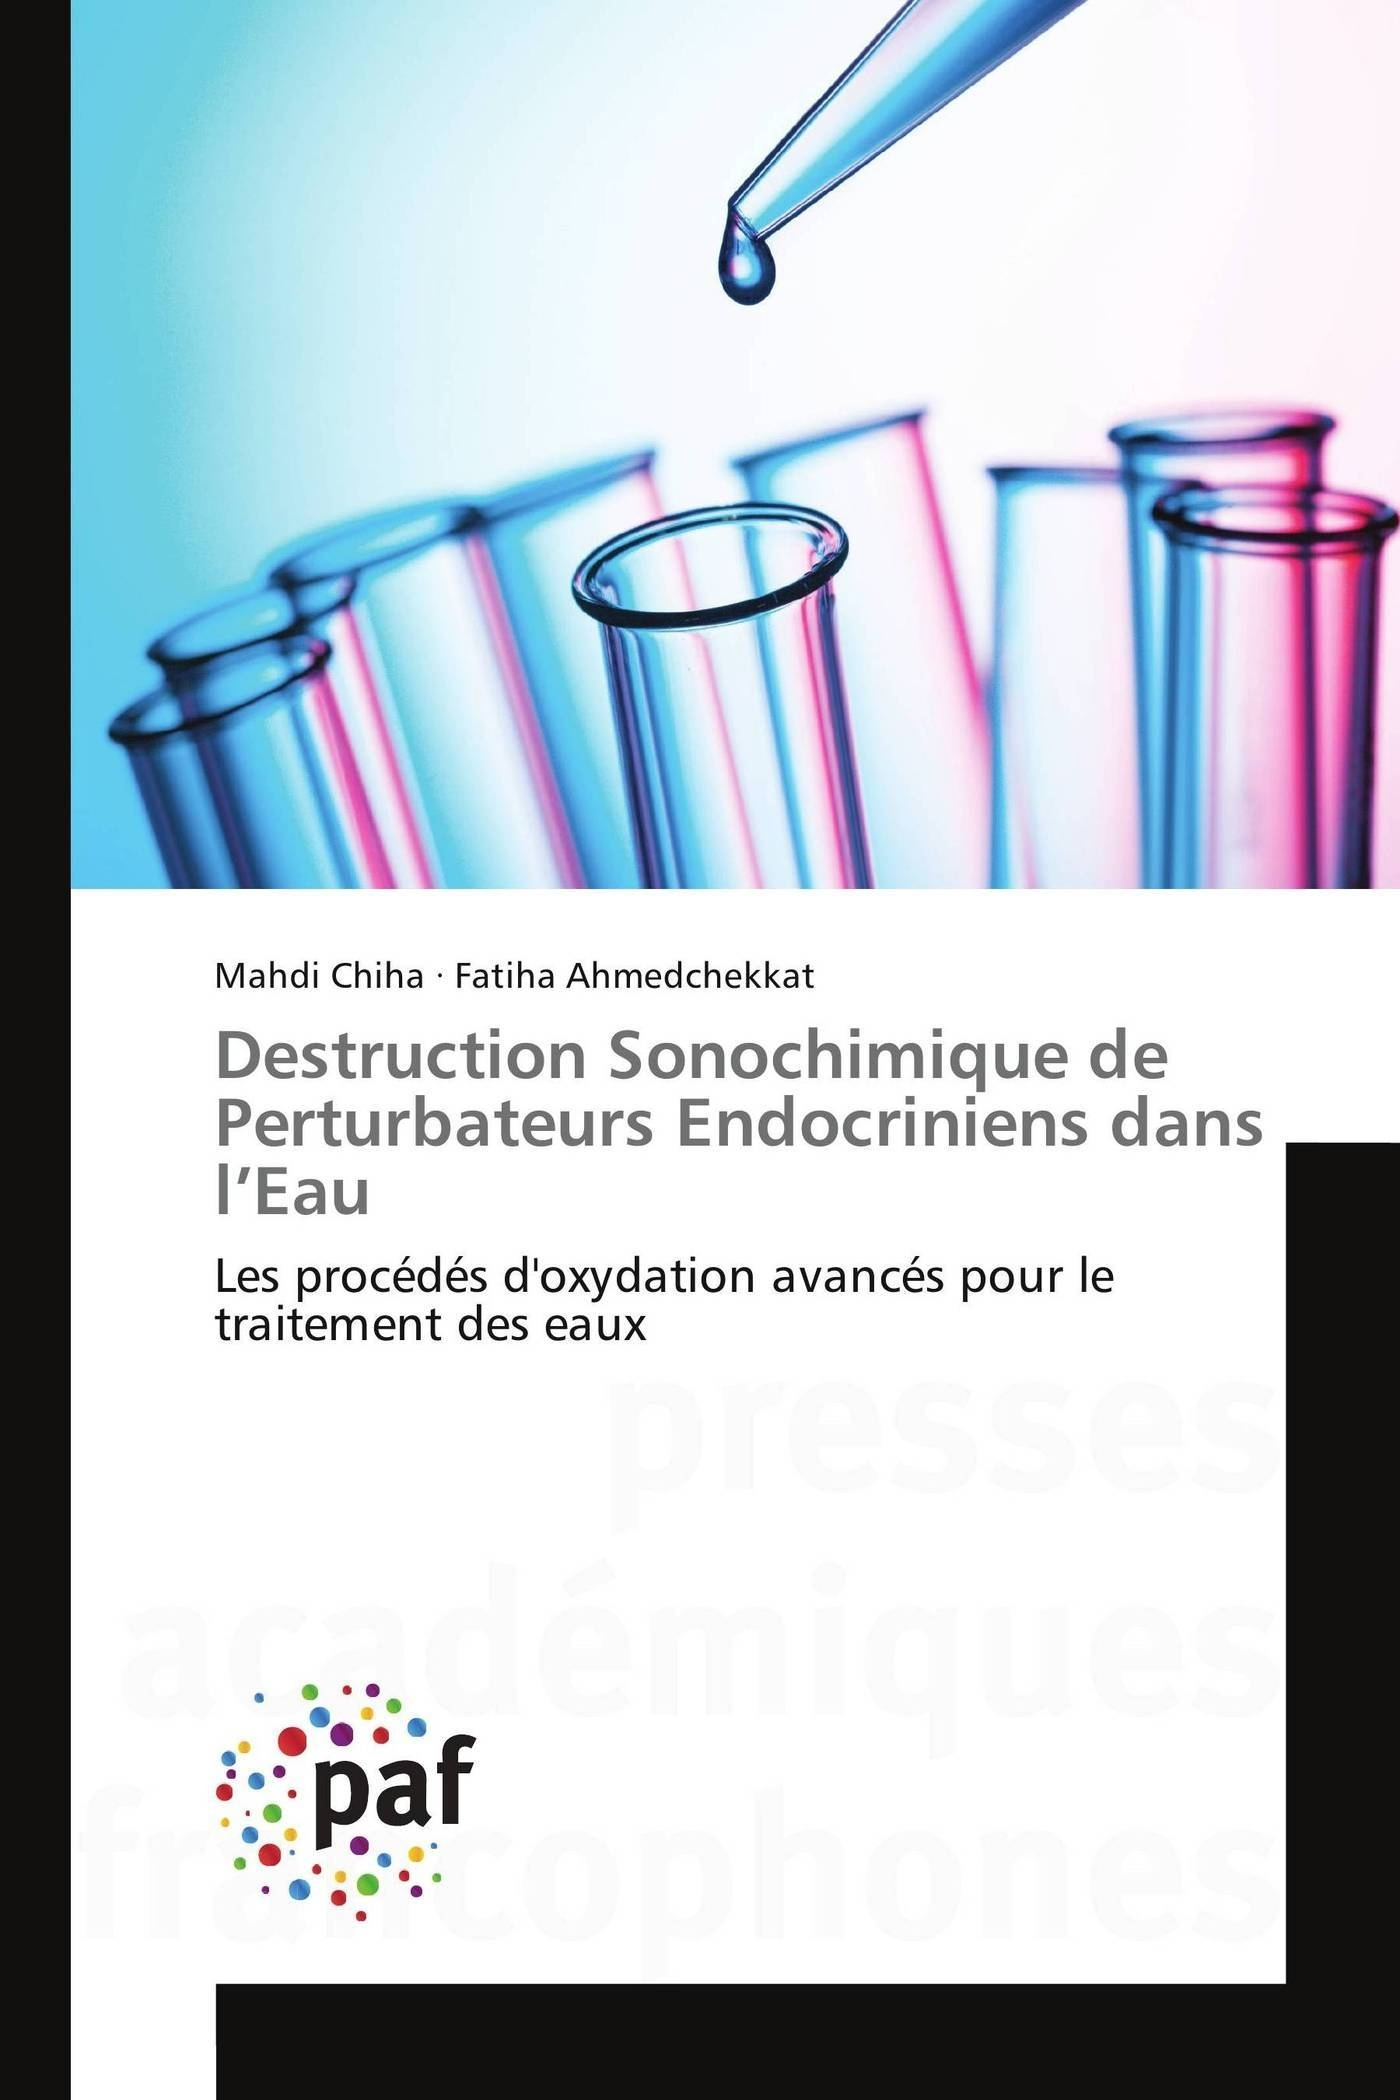 DESTRUCTION SONOCHIMIQUE DE PERTURBATEURS ENDOCRINIENS DANS L EAU